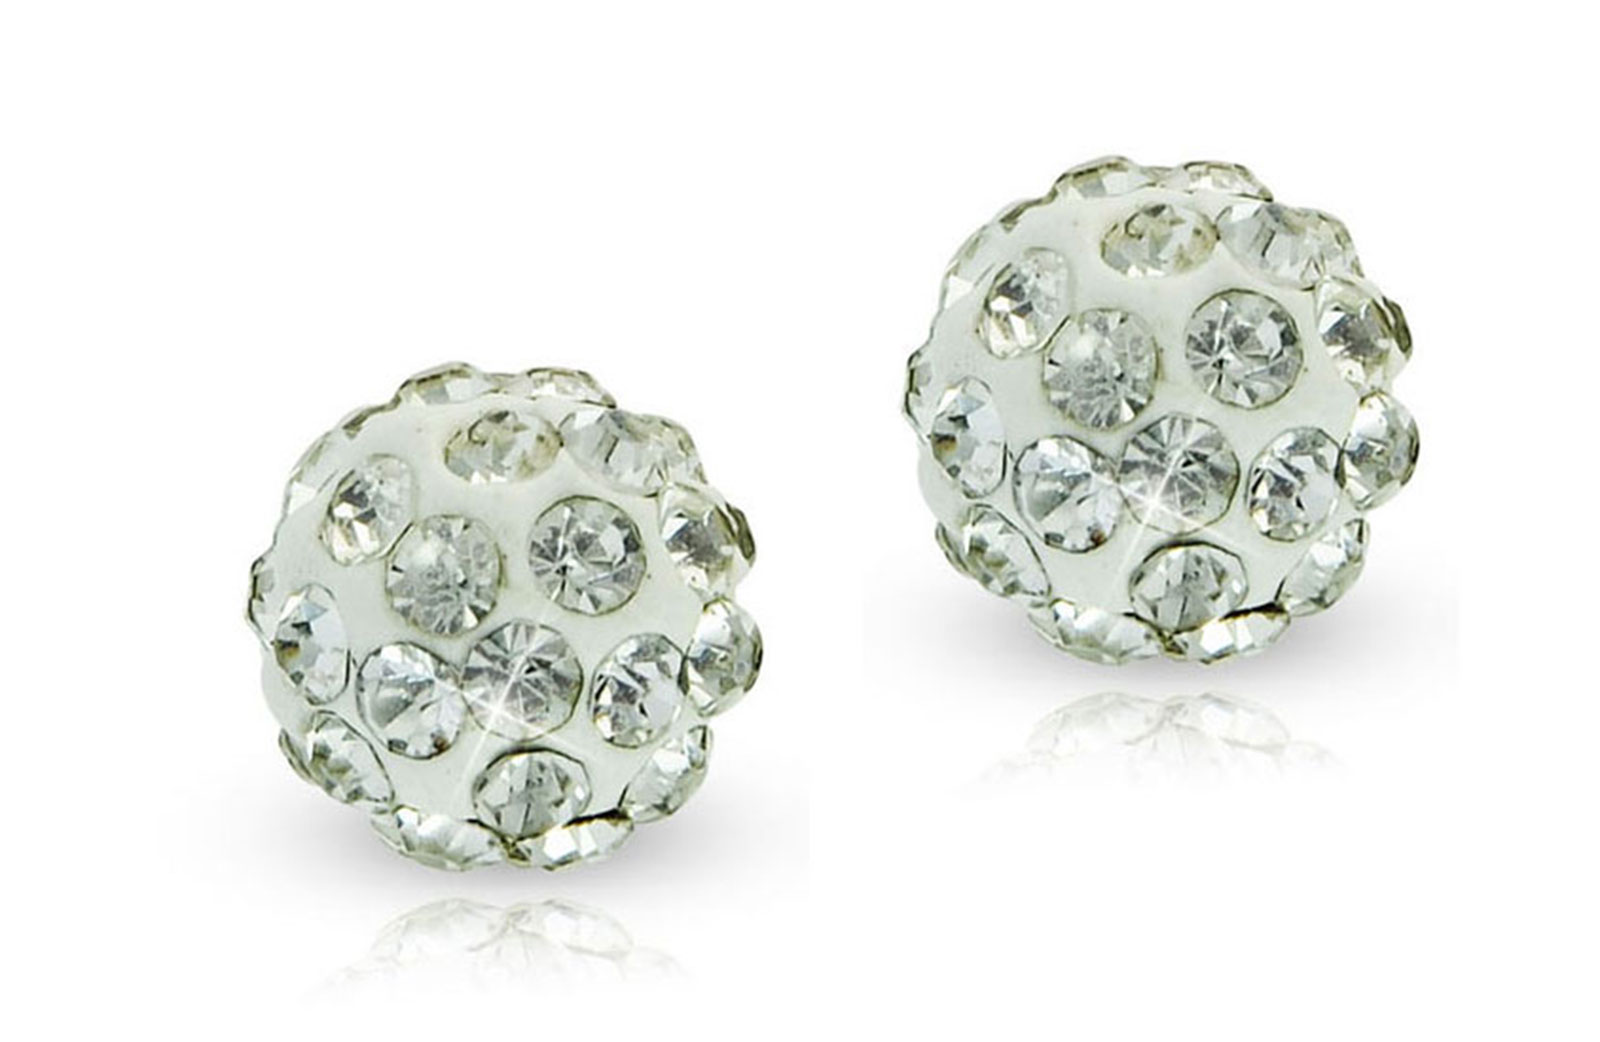 Vera Perla 10k Solid Gold 8mm Simple Crystal Ball Earrings